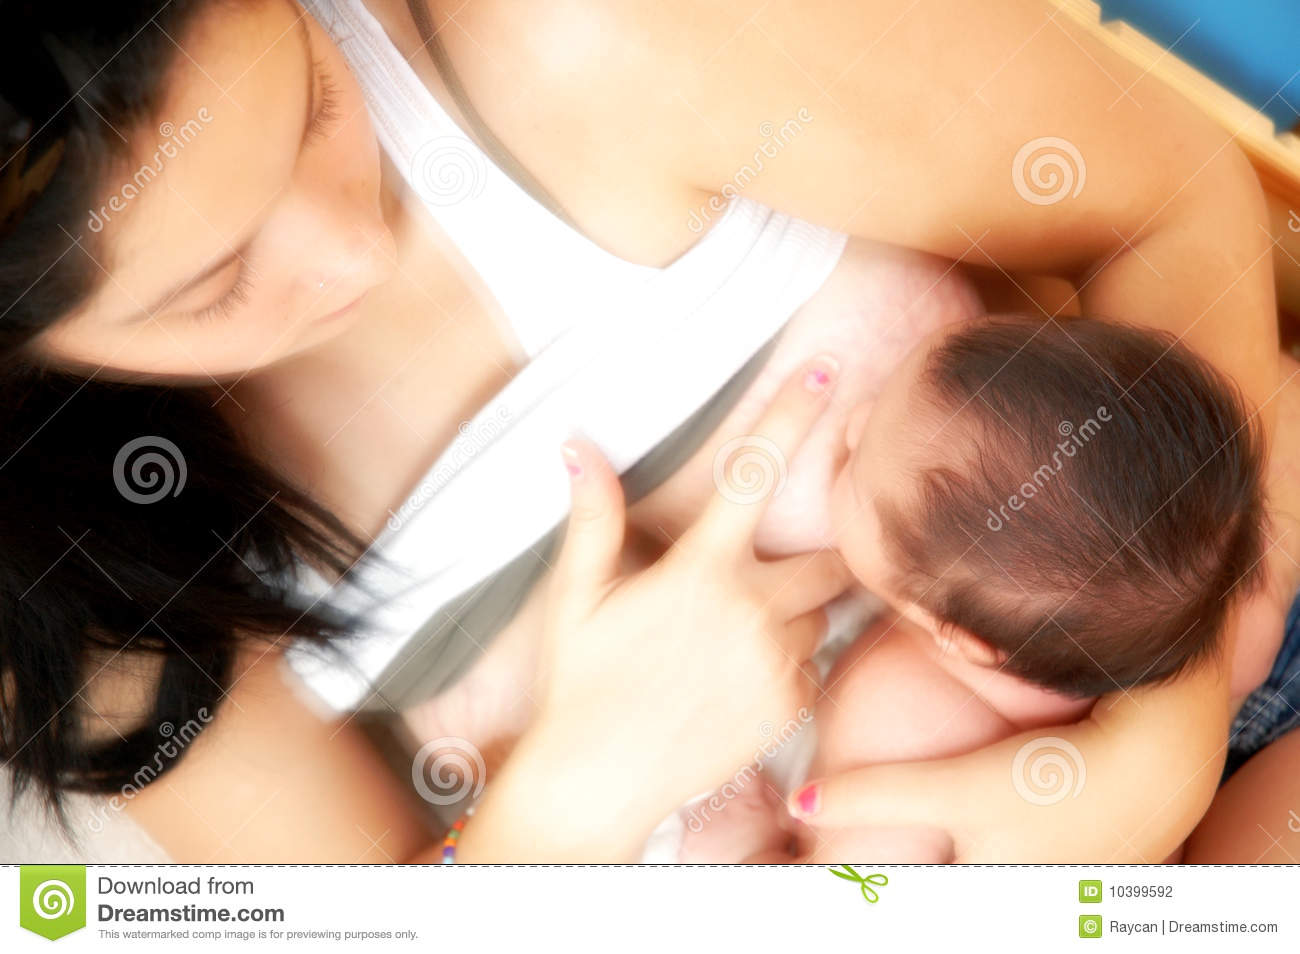 Teens breastfeeding babies images